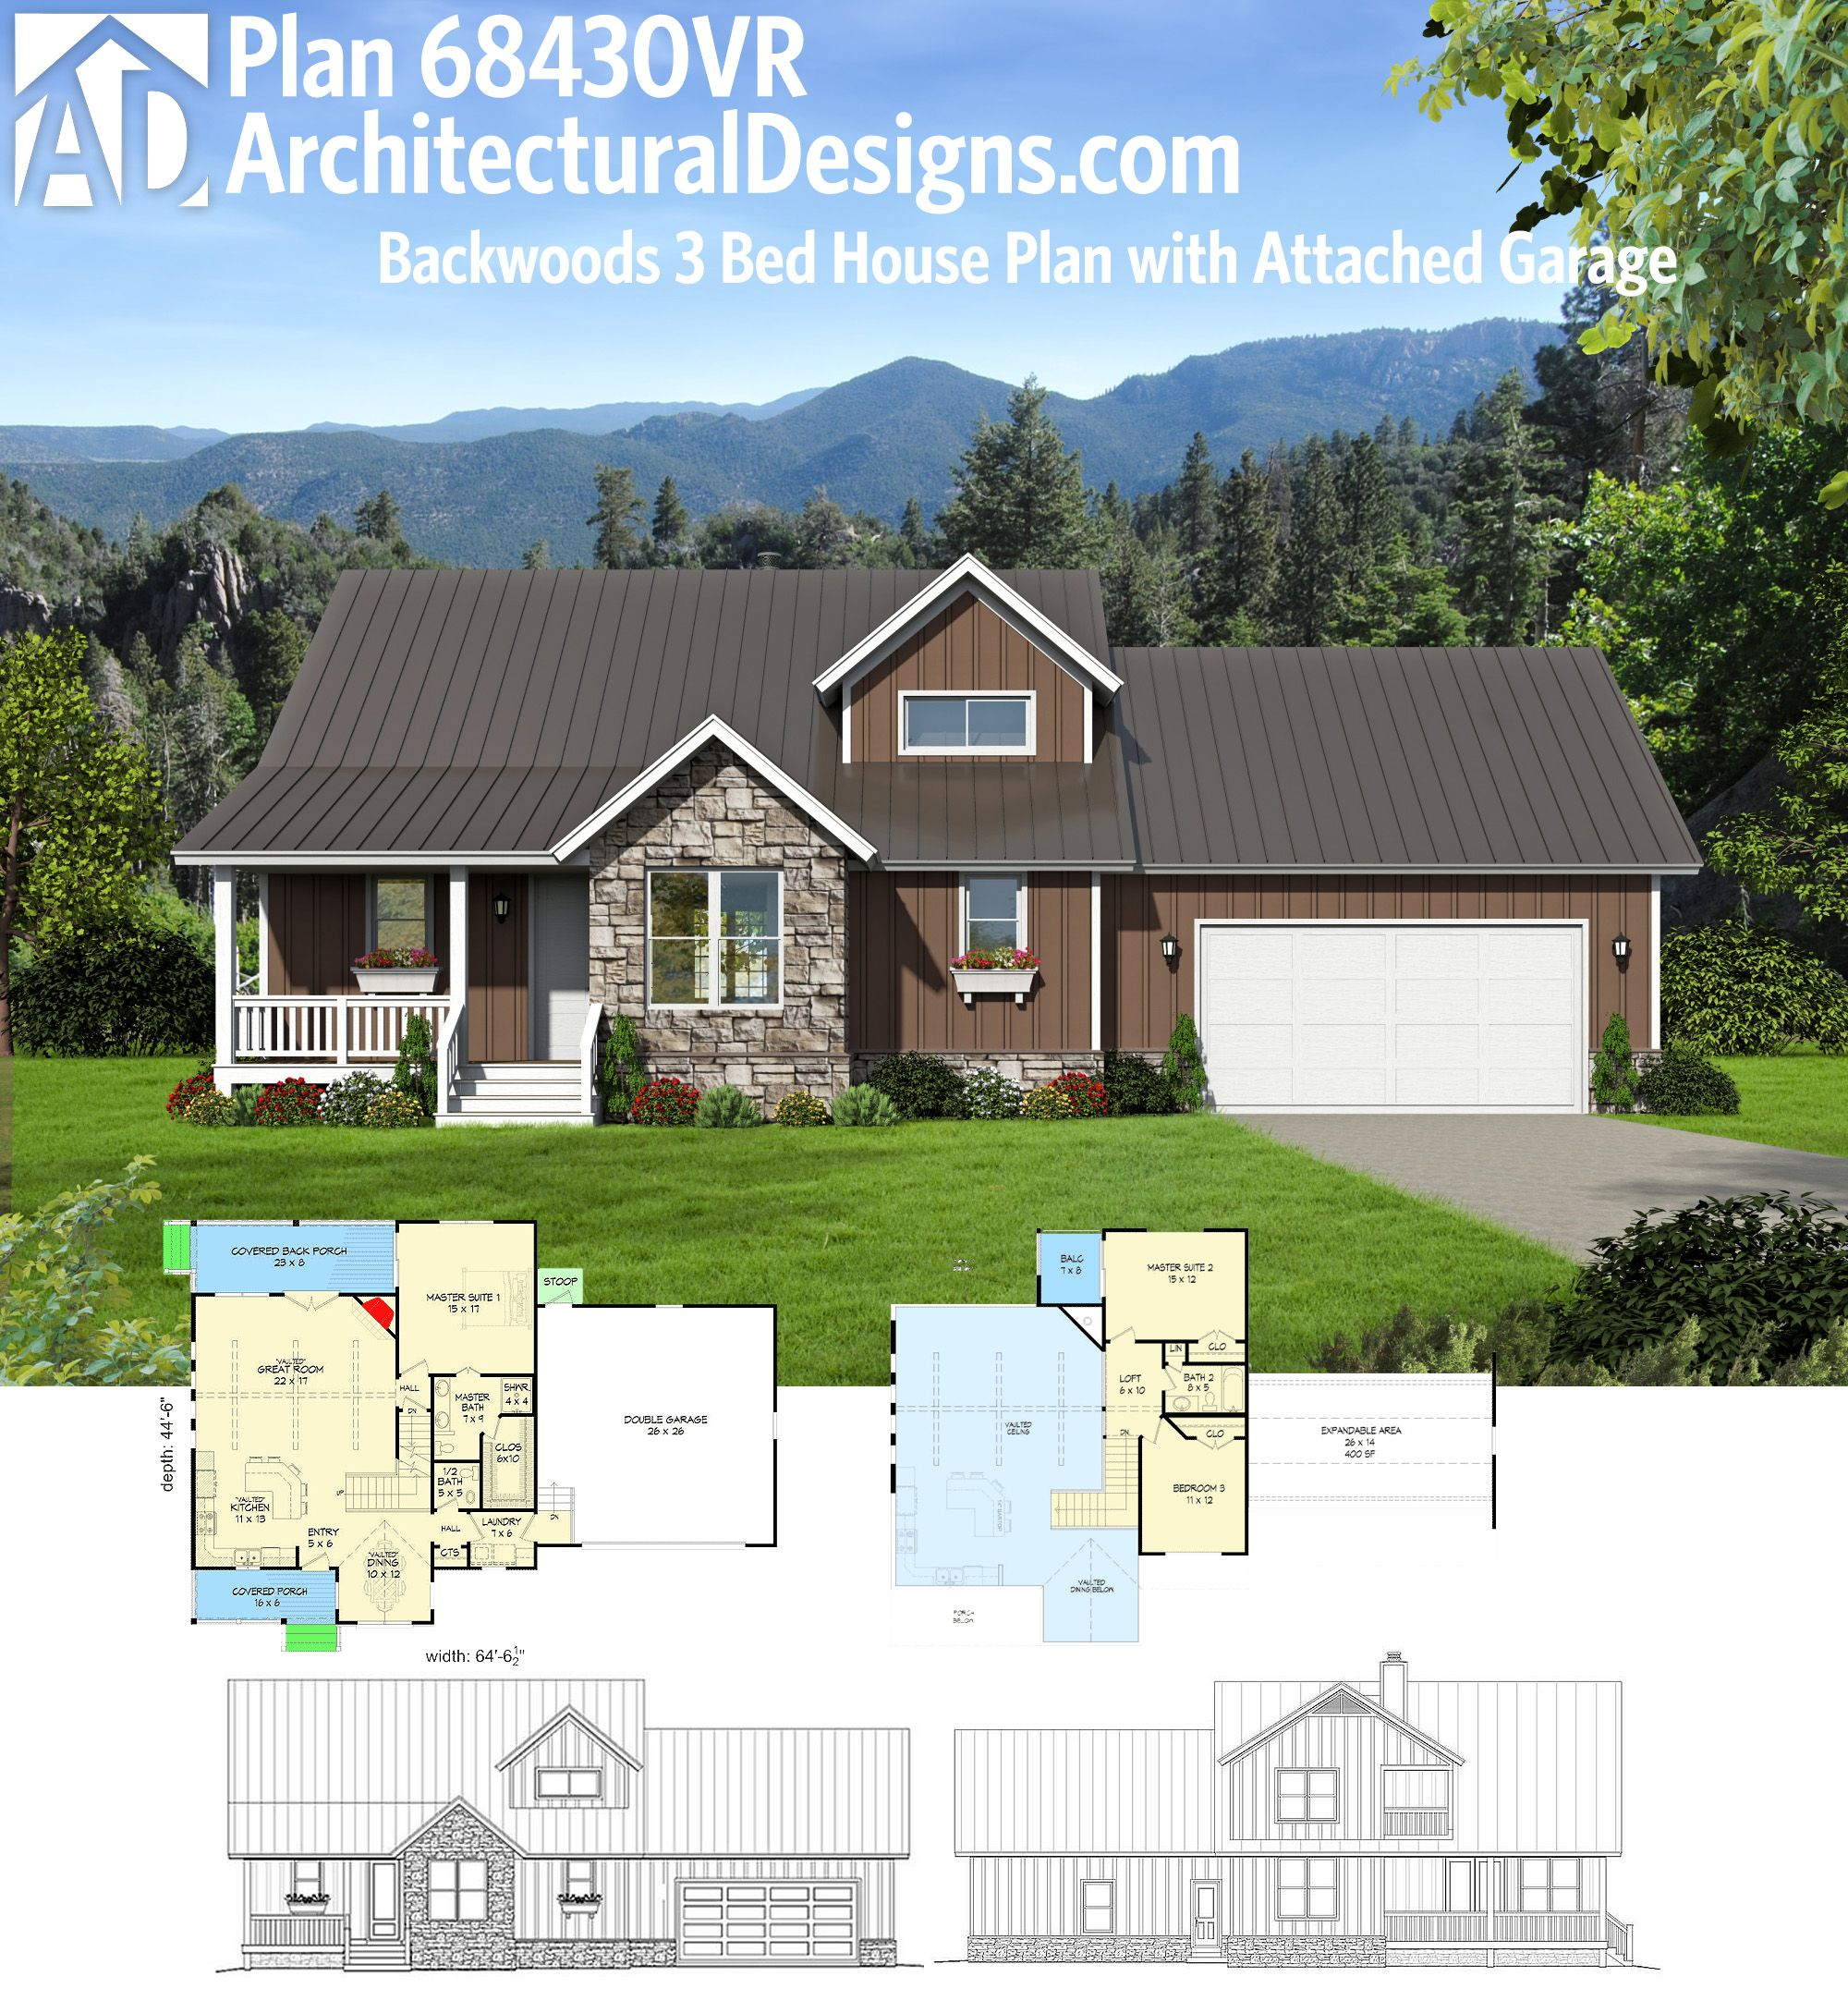 Tiny Home Designs: Architectural Designs 3 Bed House Plan 68430VR Has An